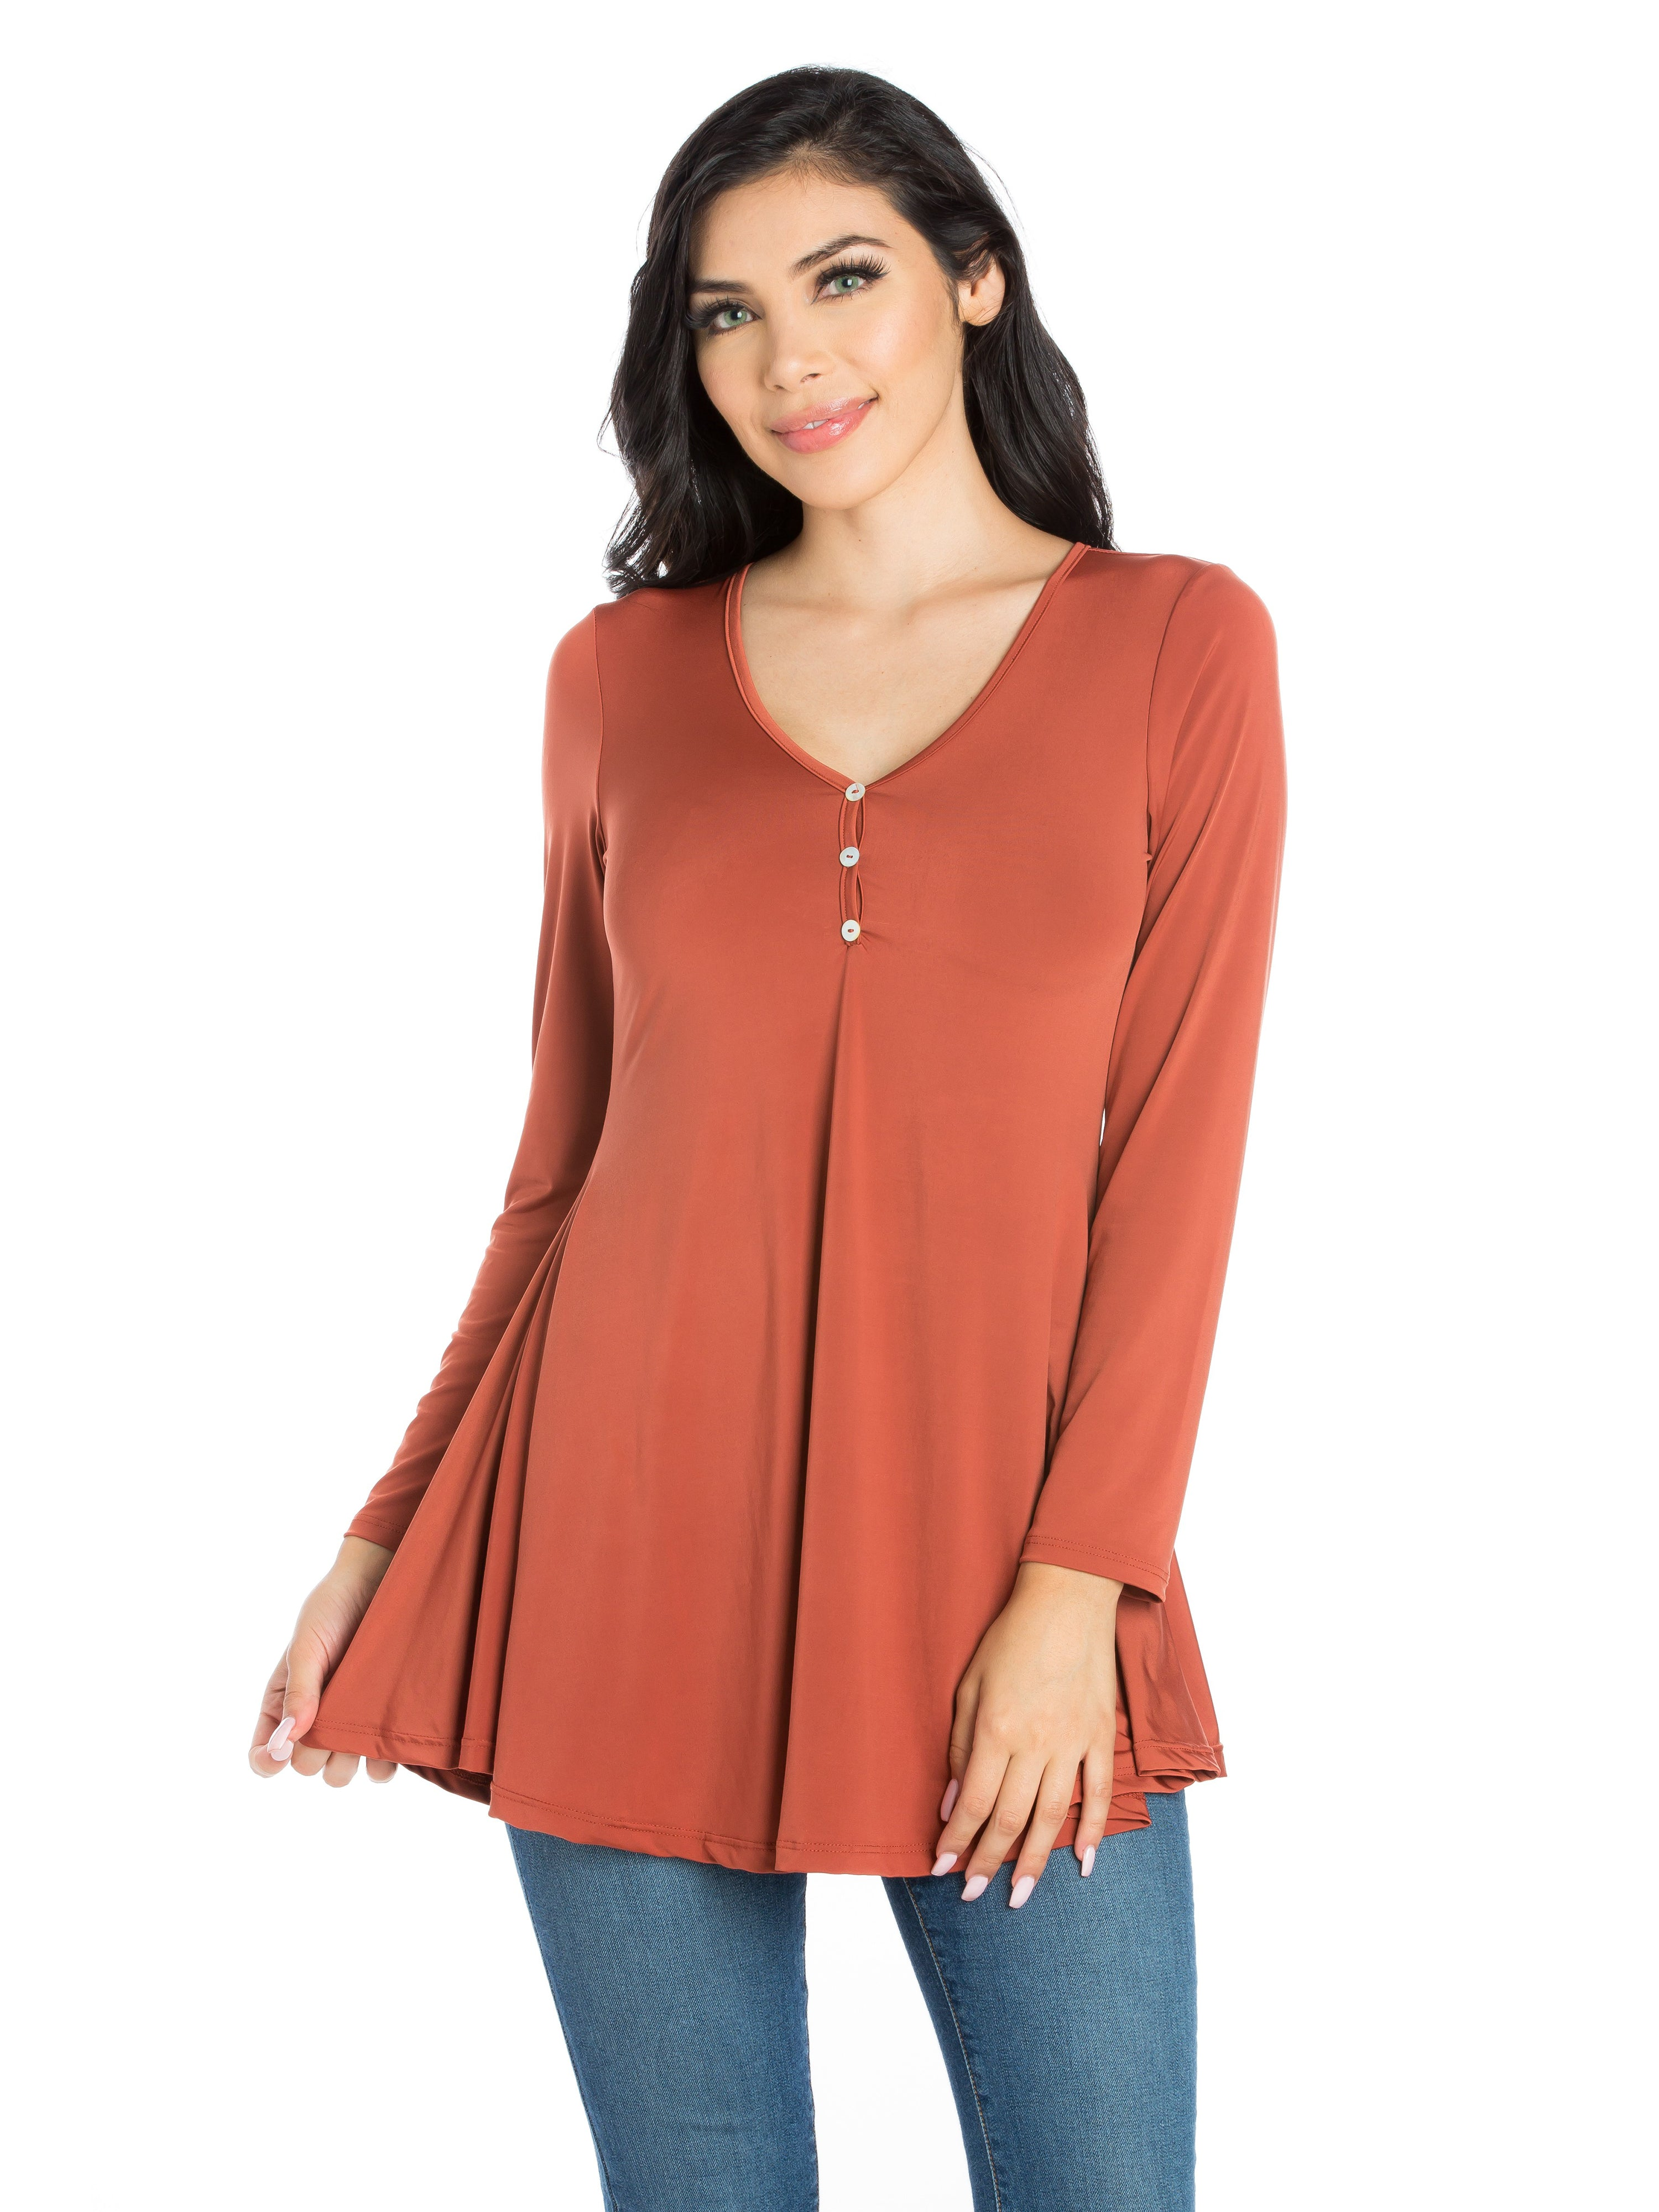 24seven Comfort Apparel Flared Long Sleeve Henley Tunic Top